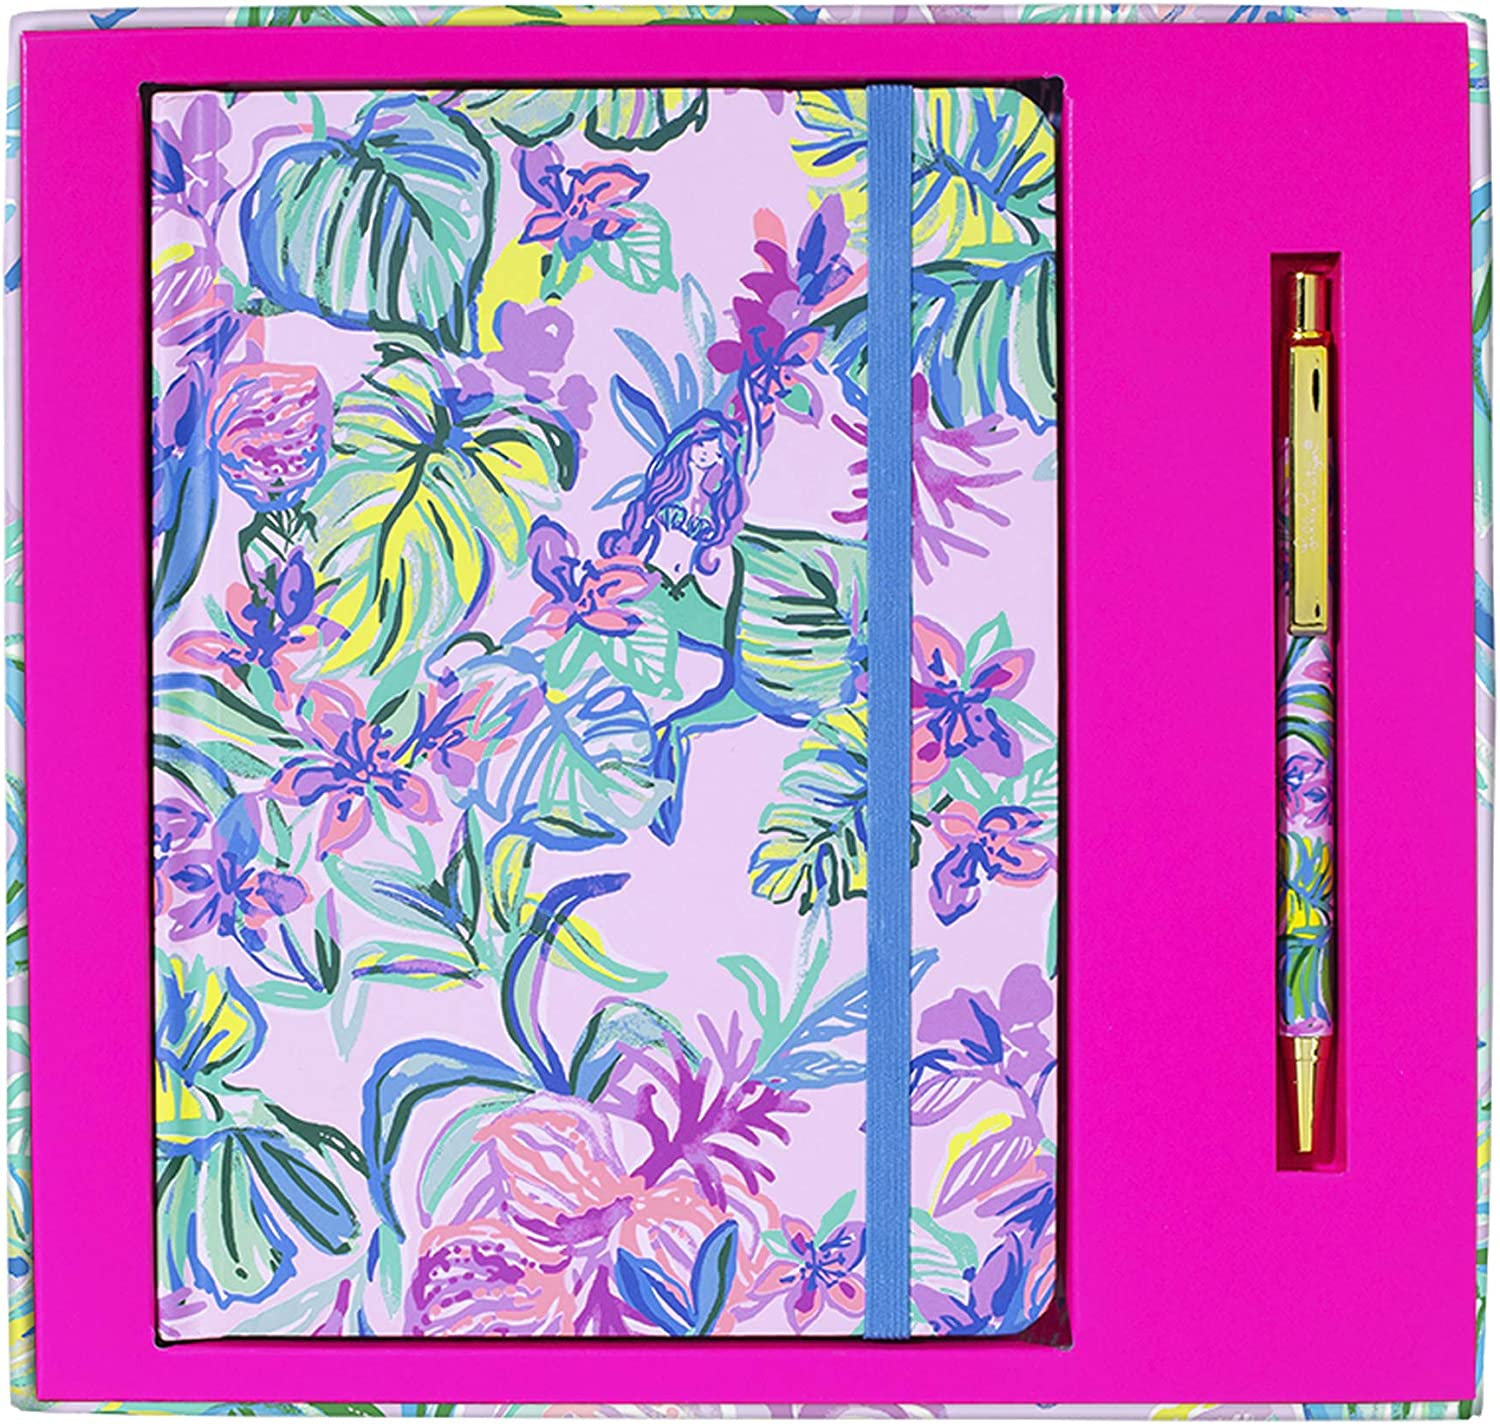 Lilly Pulitzer Leatherette Journal with 128 Lined Pages and Black Ink Pen Set, Mermaid in the Shade